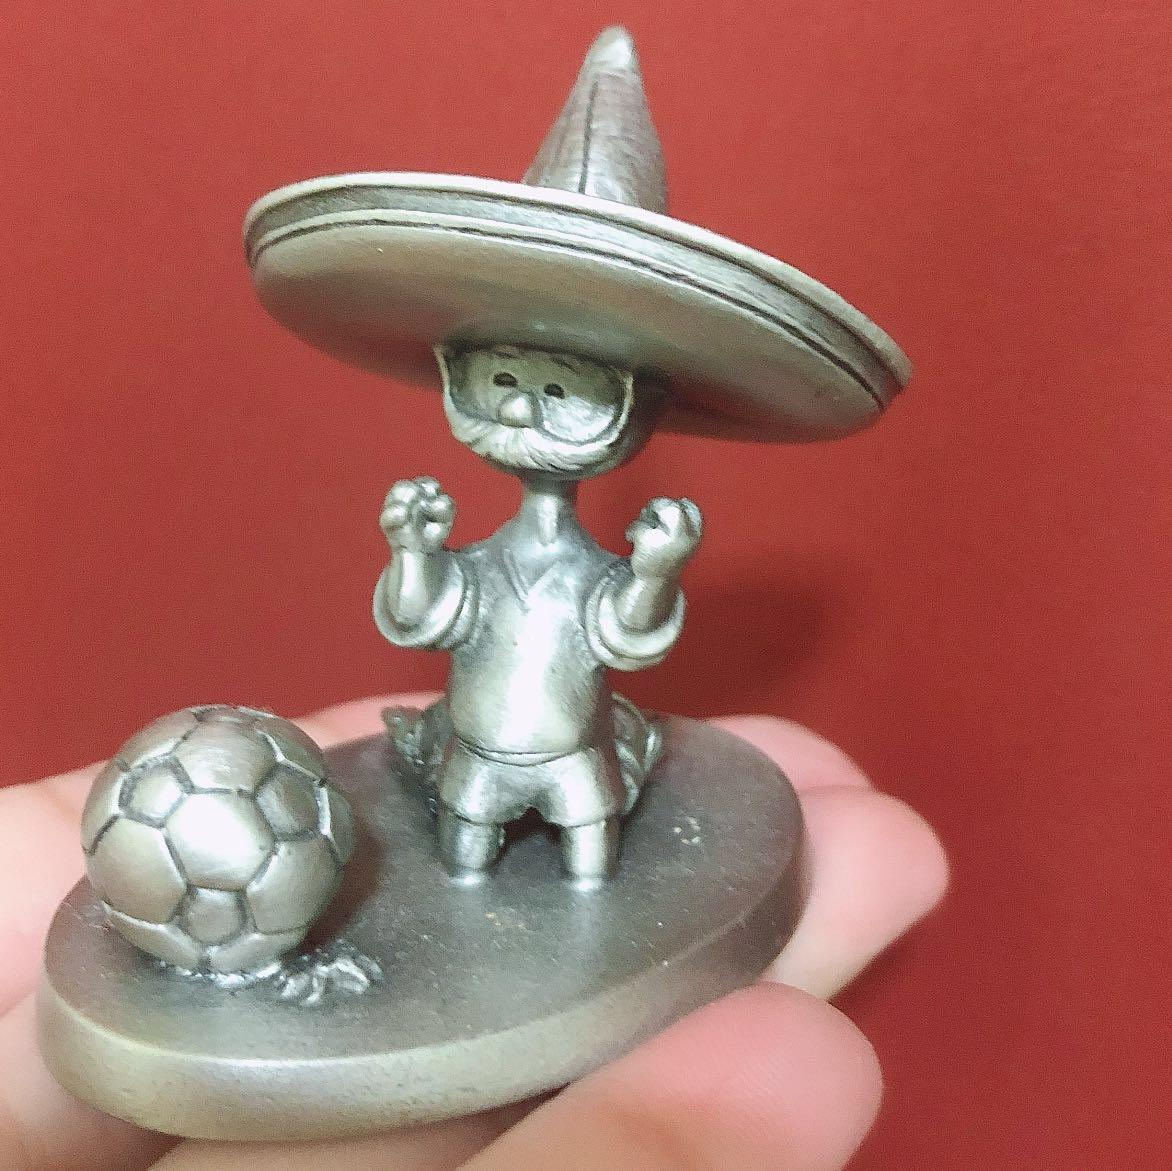 1986 FIFA WORLD CUP OFFICIAL MASCOT PIQUE FROM MEXICO GAMES